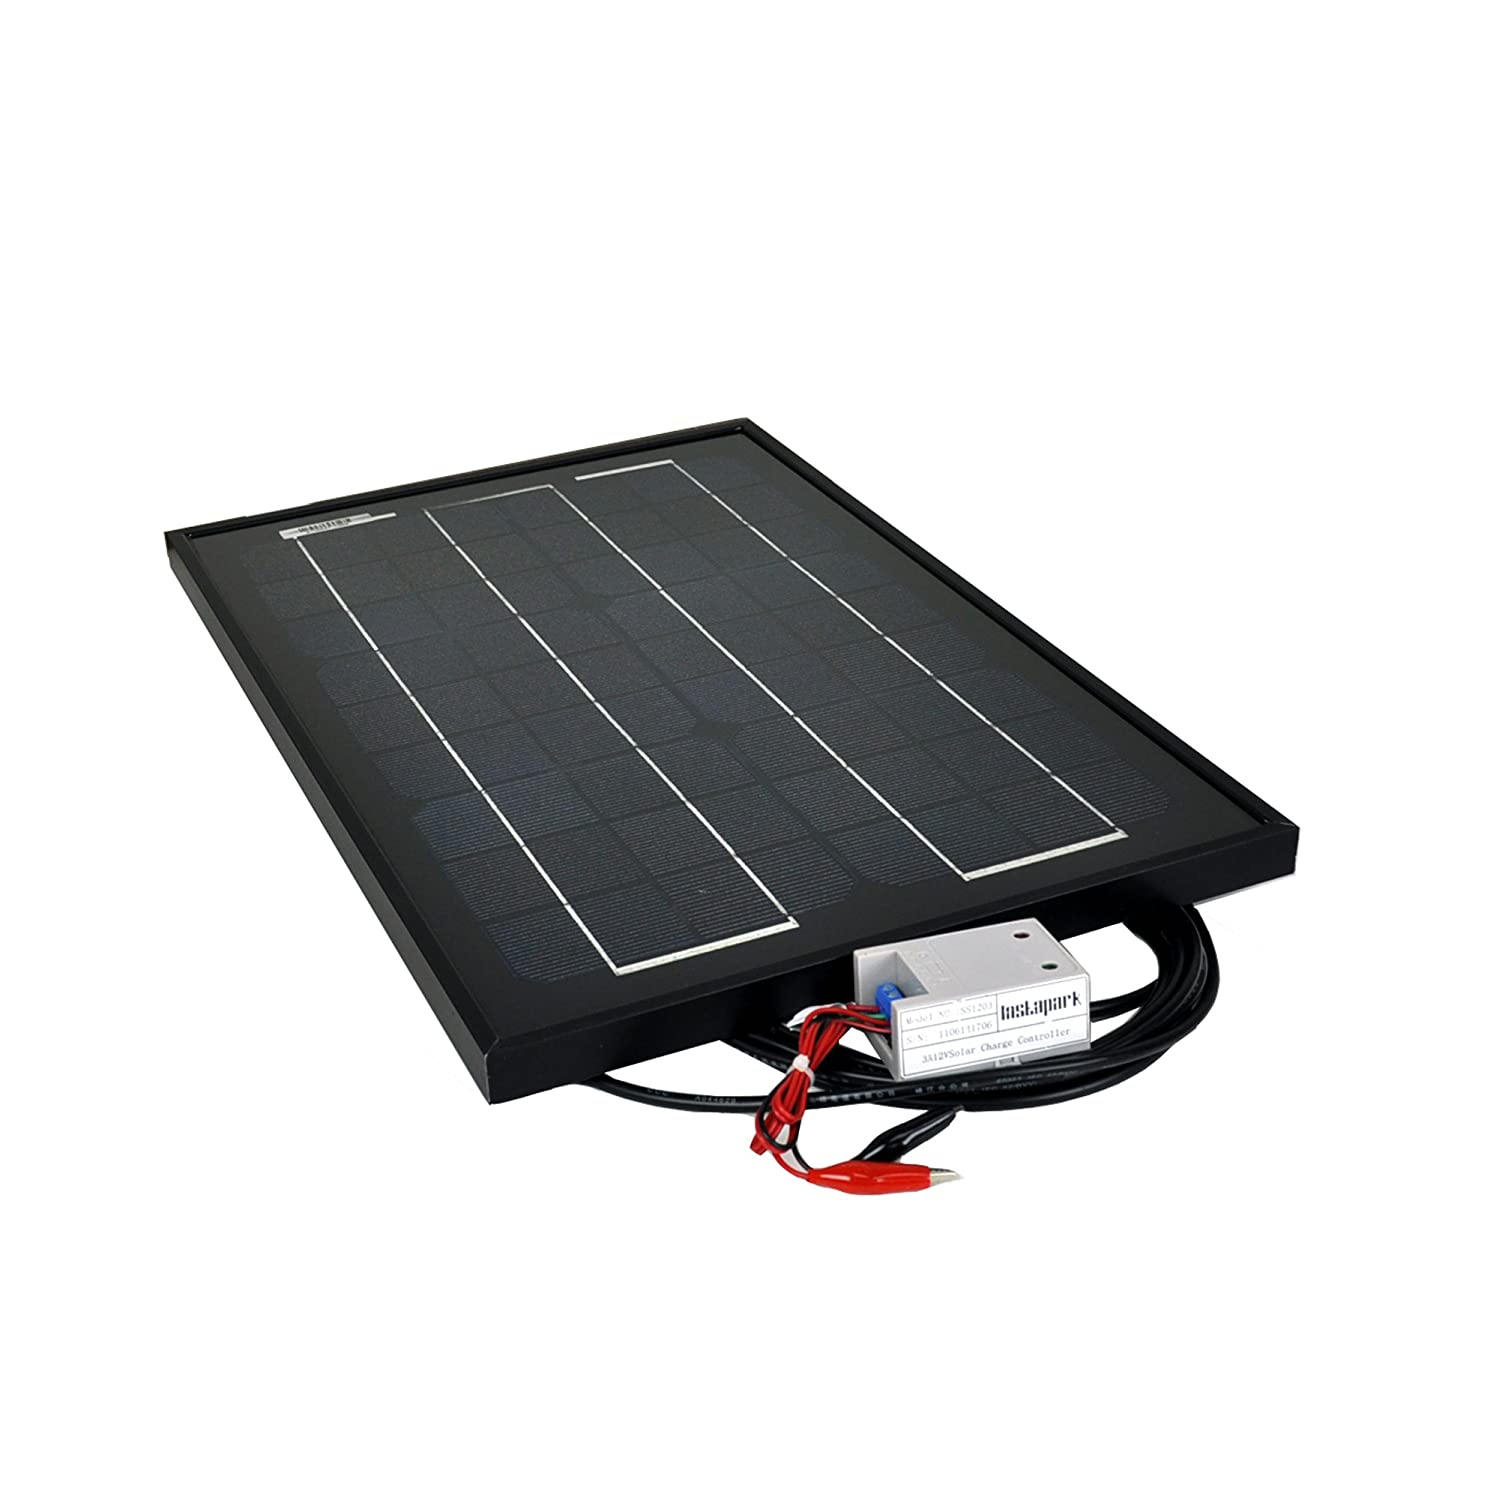 Instapark 15W Monocrystalline Solar Panel + 12V solar charge controller Review